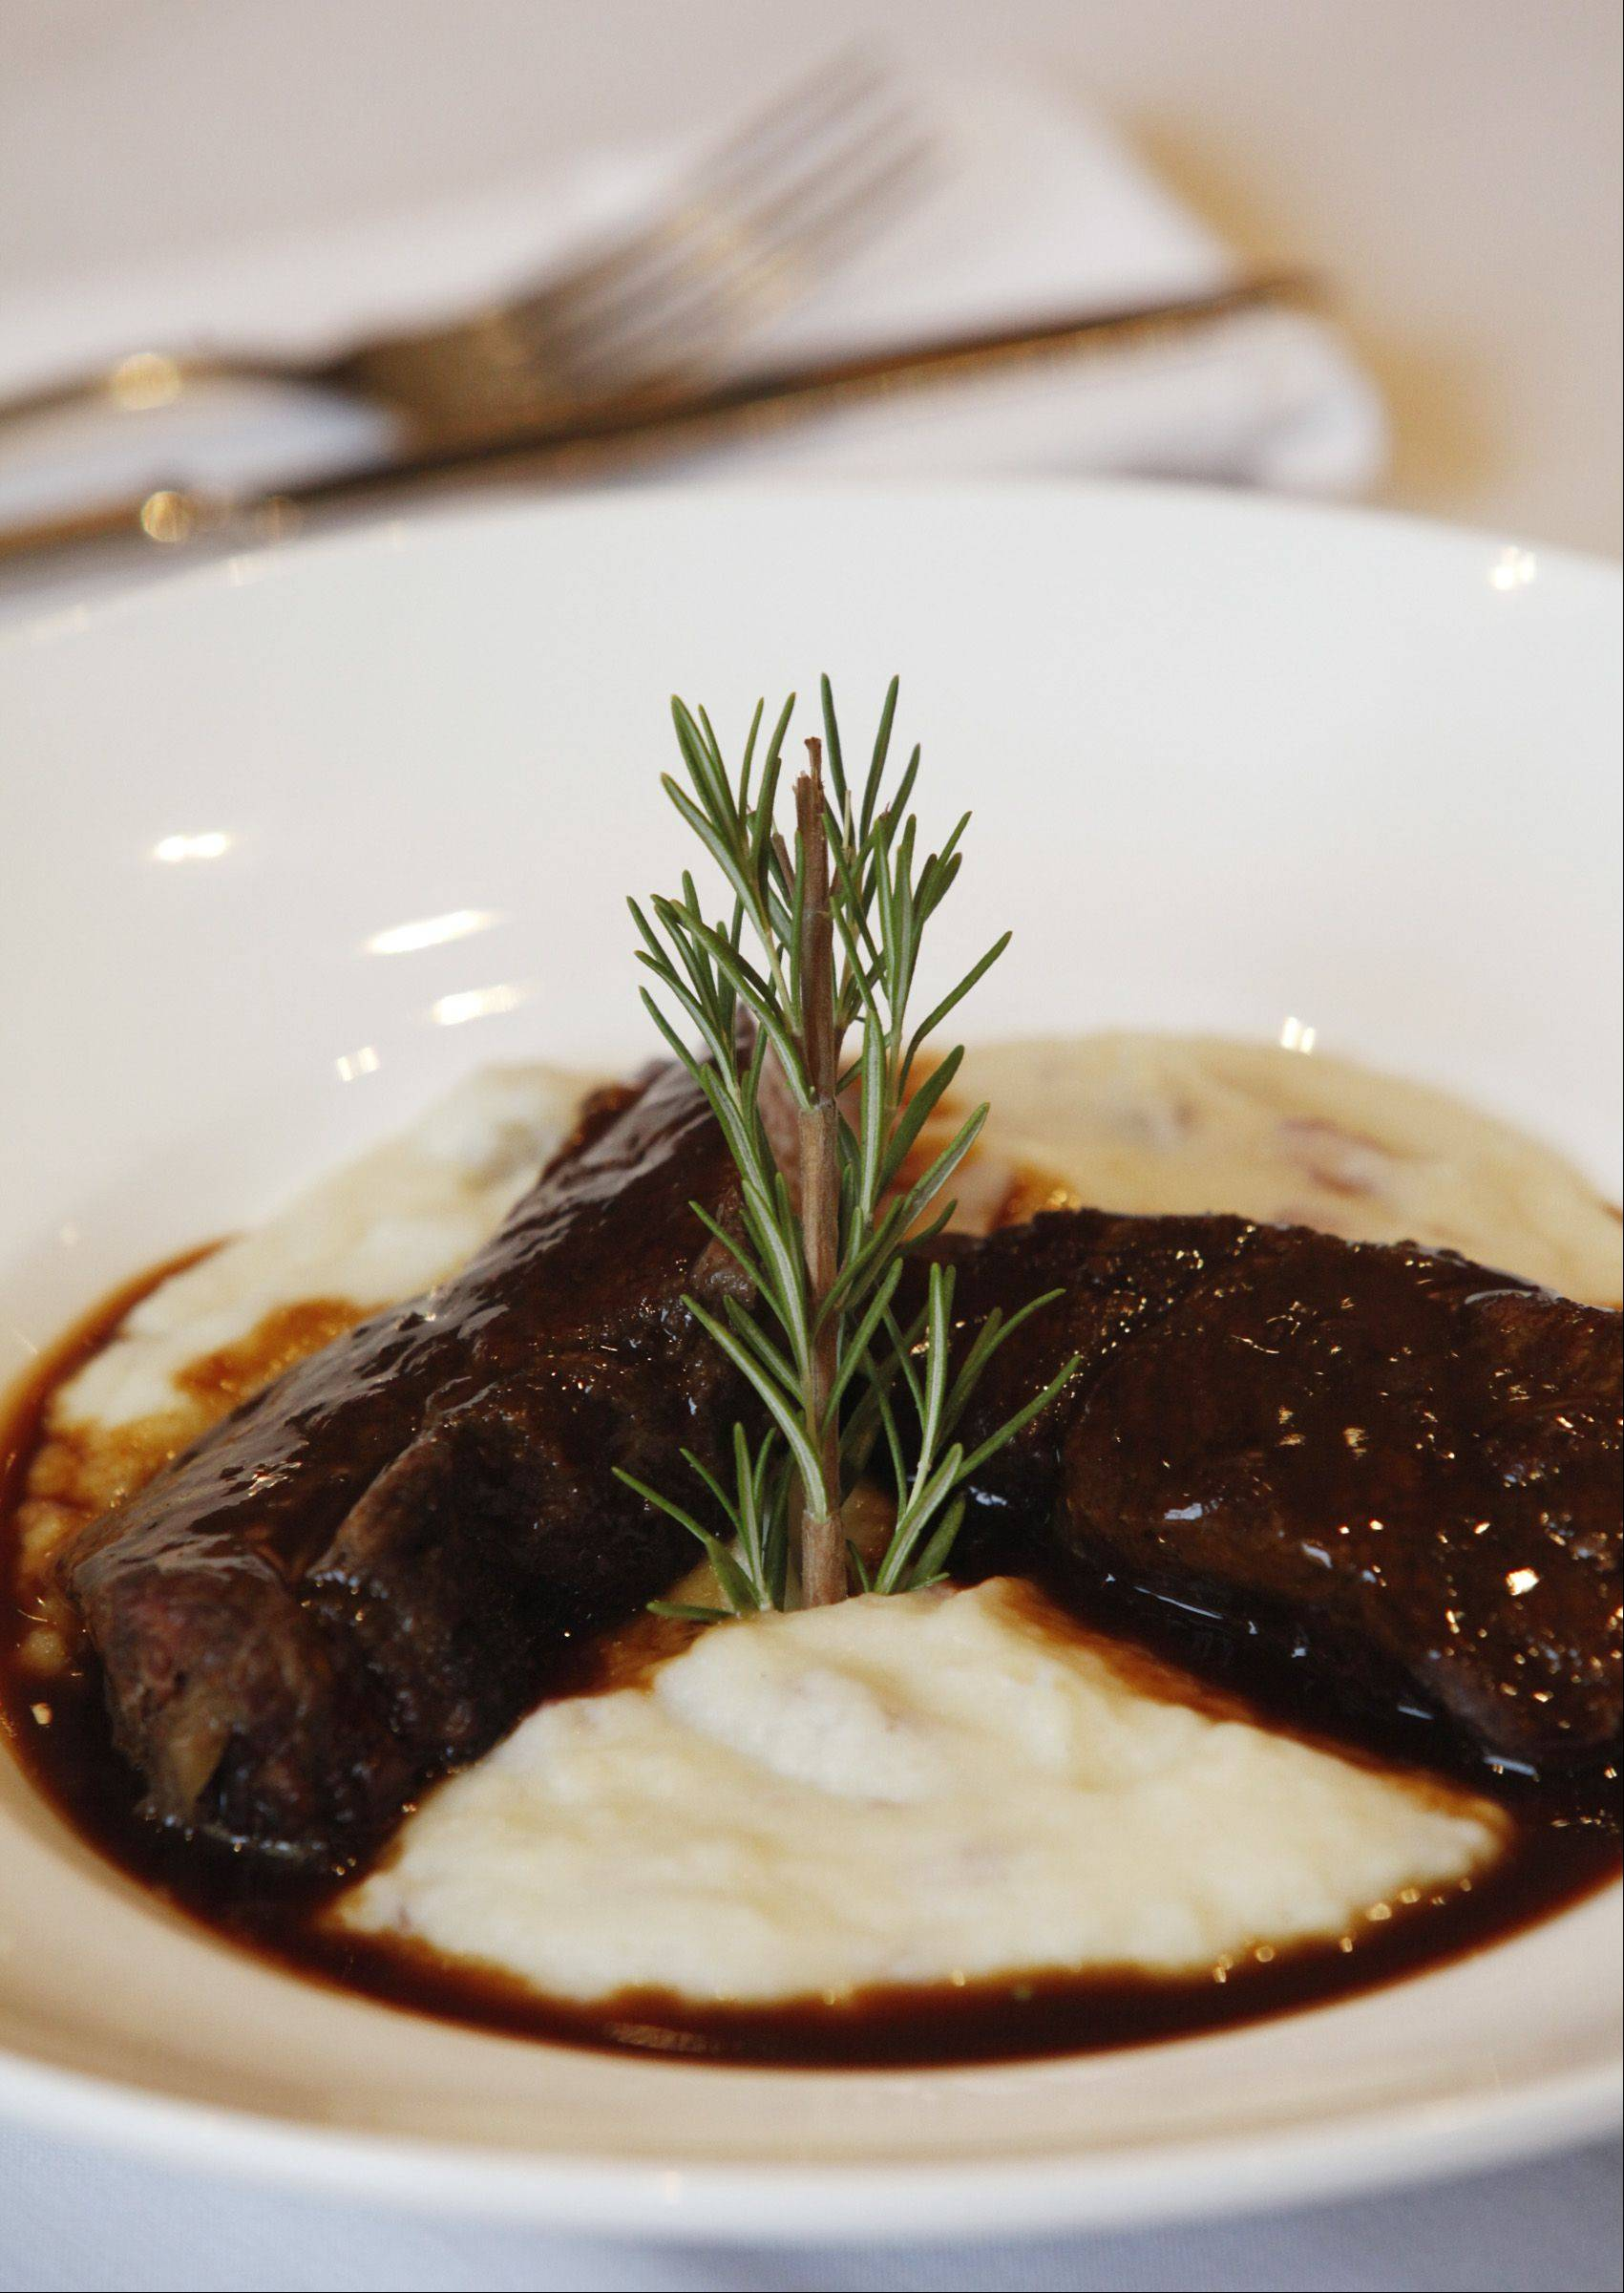 Braised short ribs with parmesan and chive mashed potatoes is a winner at Marzano's Wood Fire Italian restaurant in McHenry.